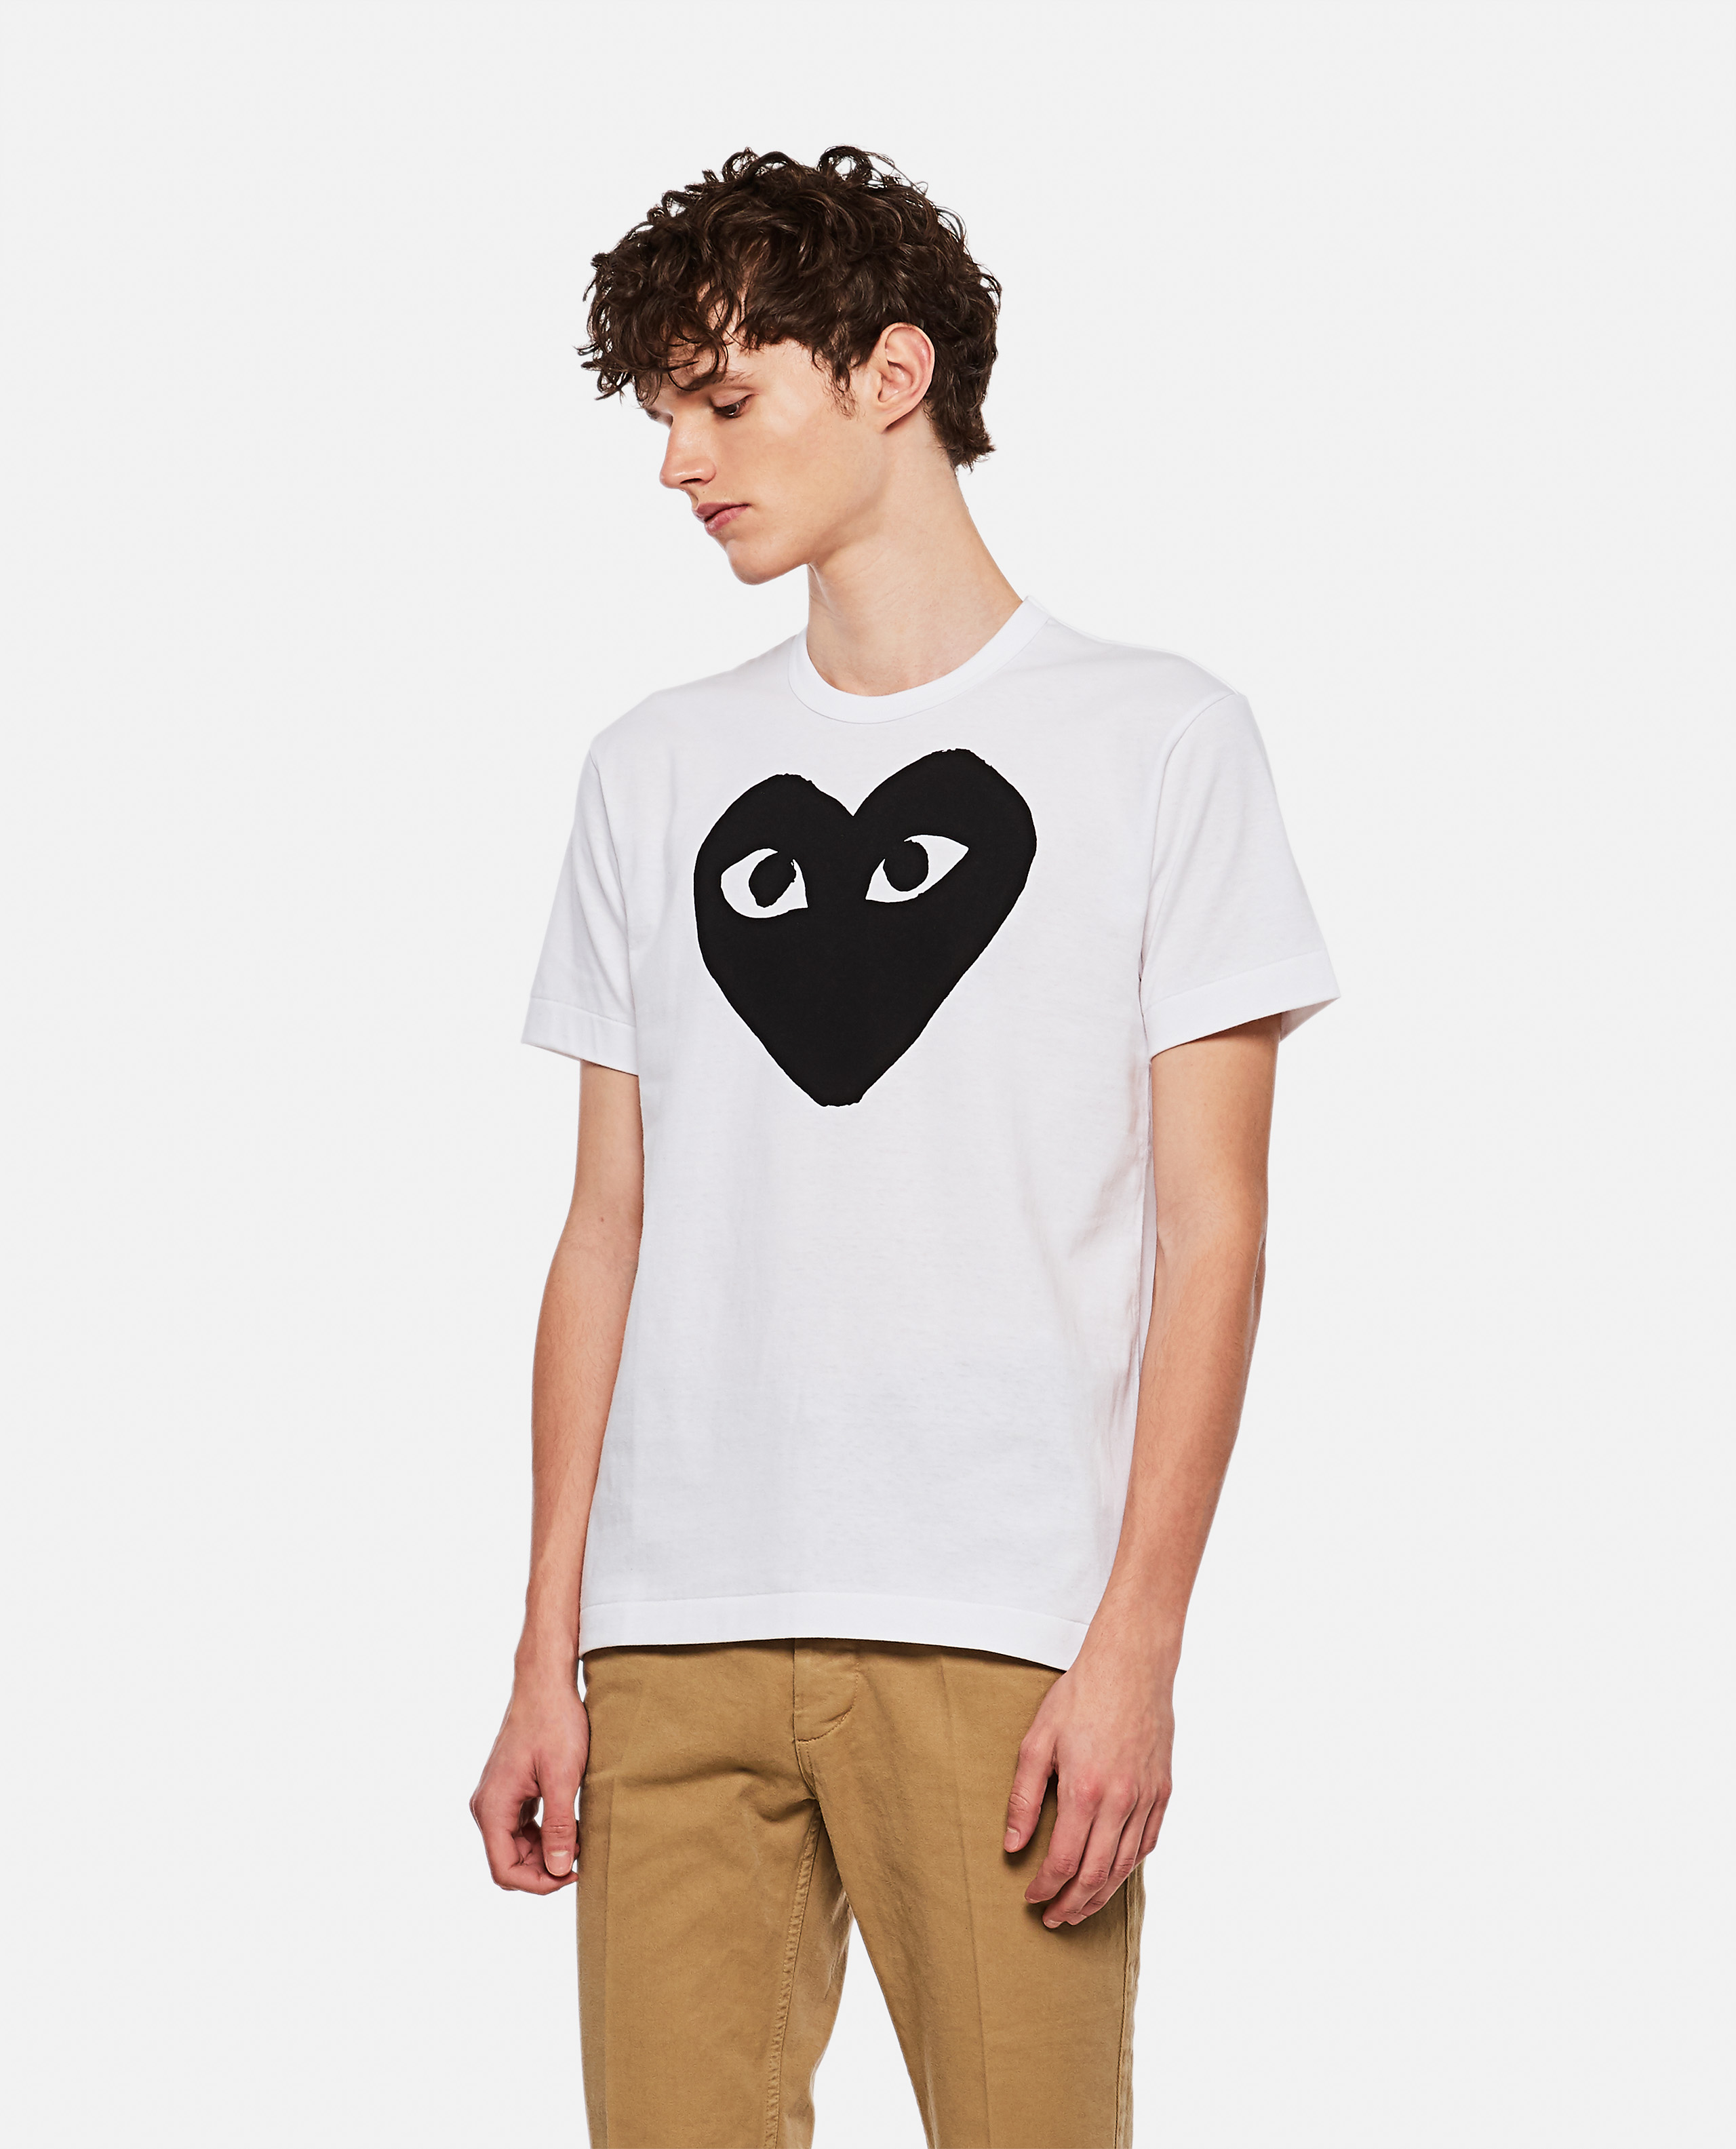 T-shirt with hearts print